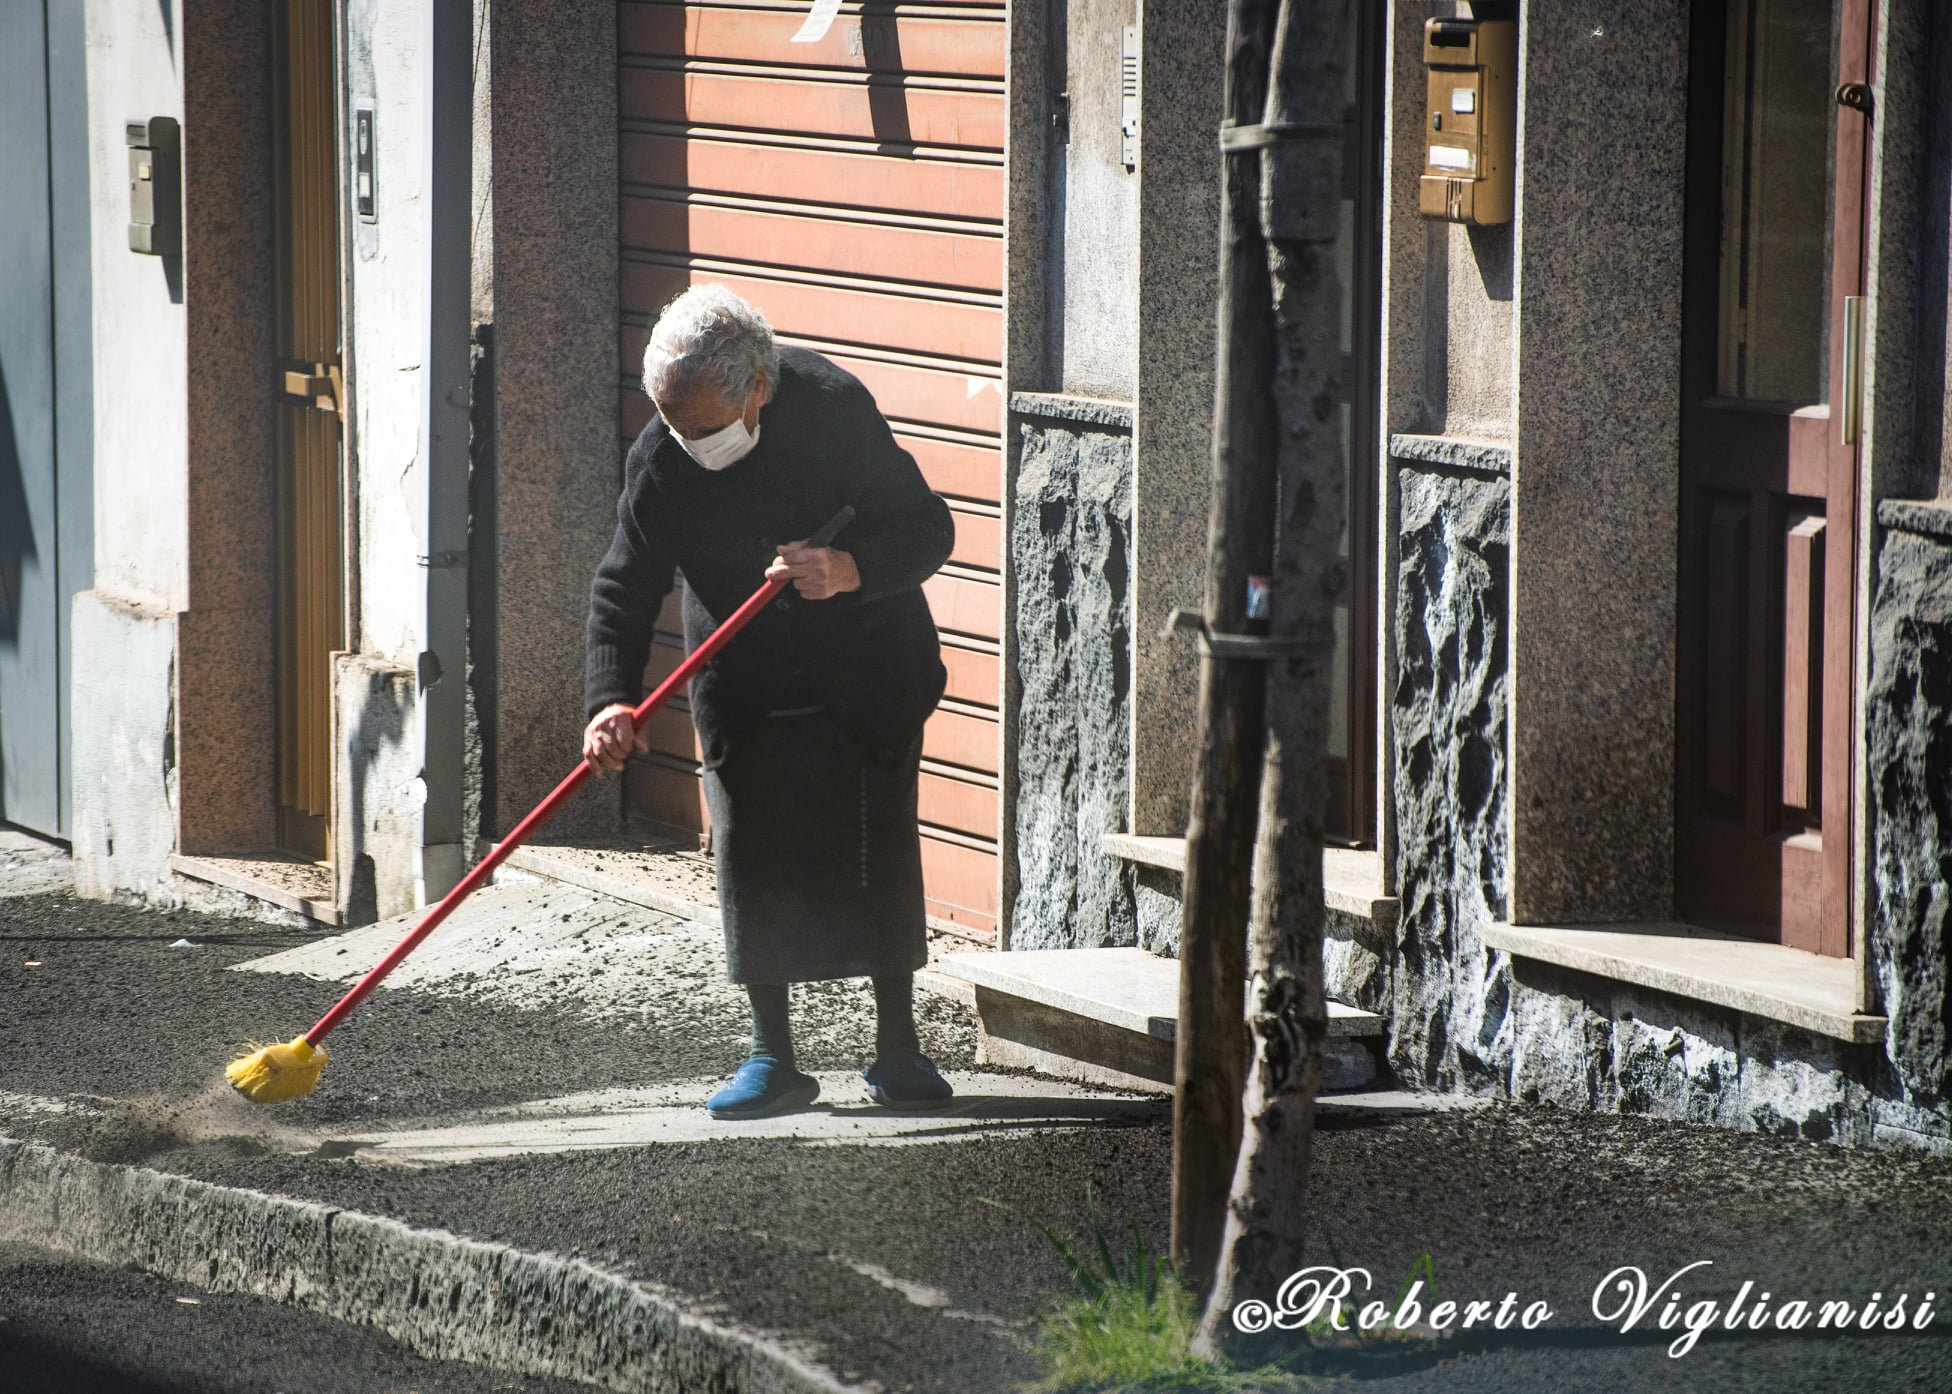 7th eruption, 28th feb 2021. Cleaning the roads, Roberto Viglianisi